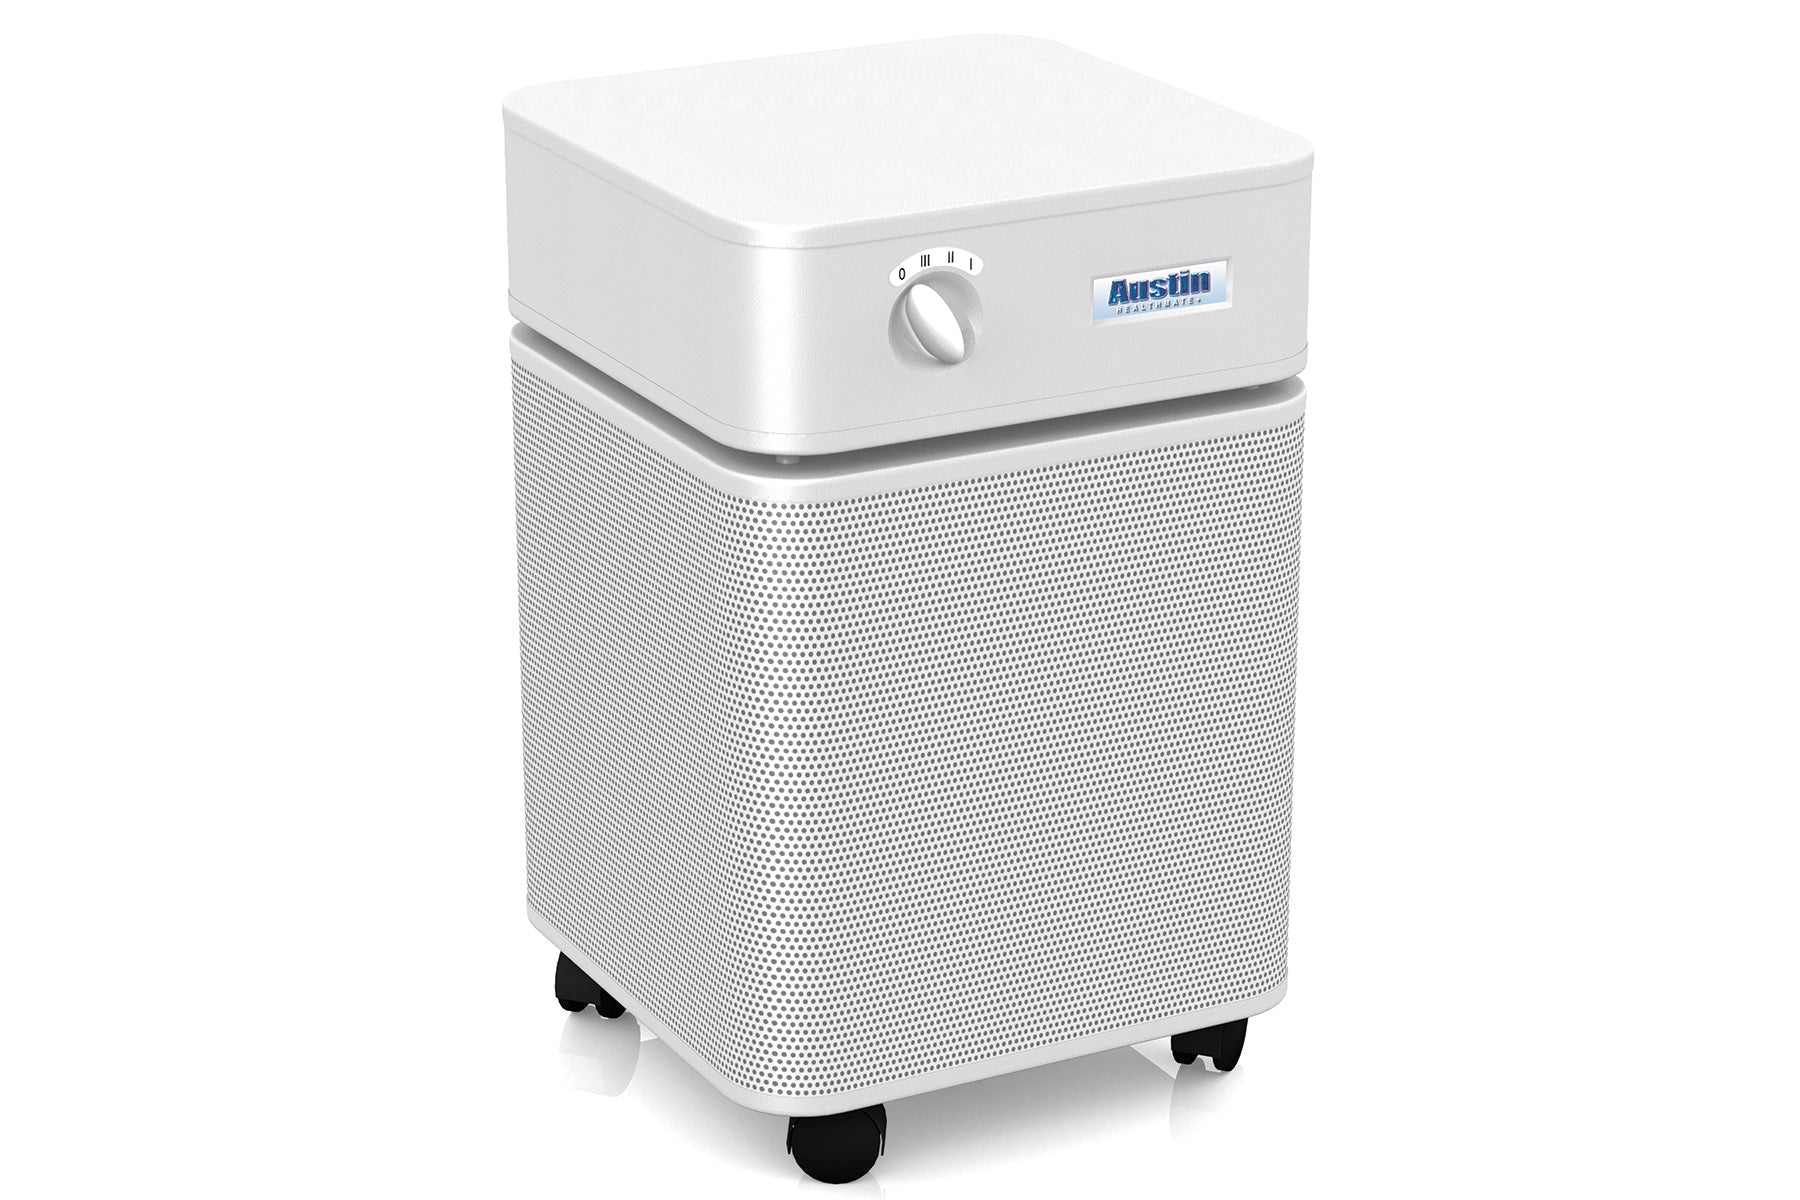 AirPurifier Austin Air HealthMate Plus® B450 Air Purifier(s)